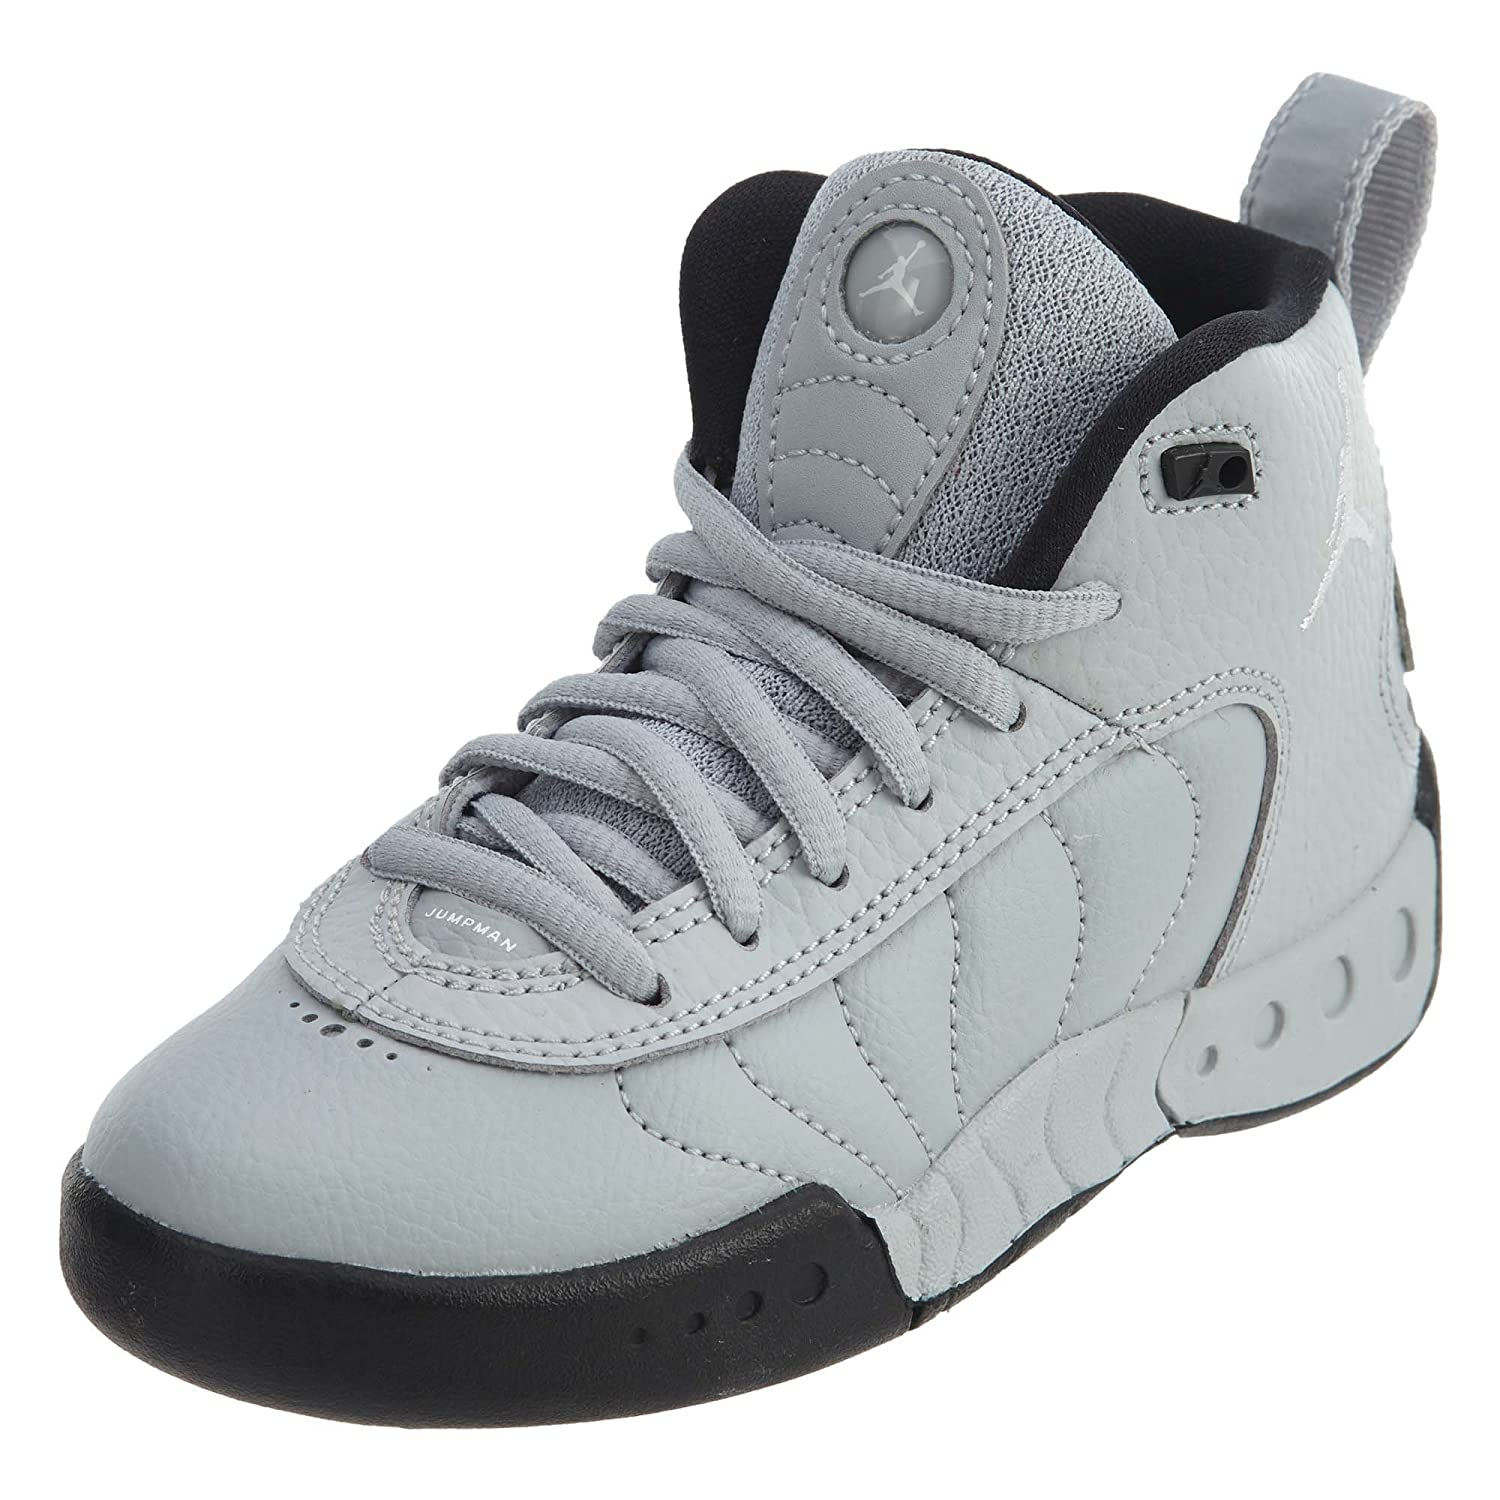 NIKE Women's Downshifter 7 B0059XJ3G0 2 M US Little Kid|Wolf Grey/White-black-white